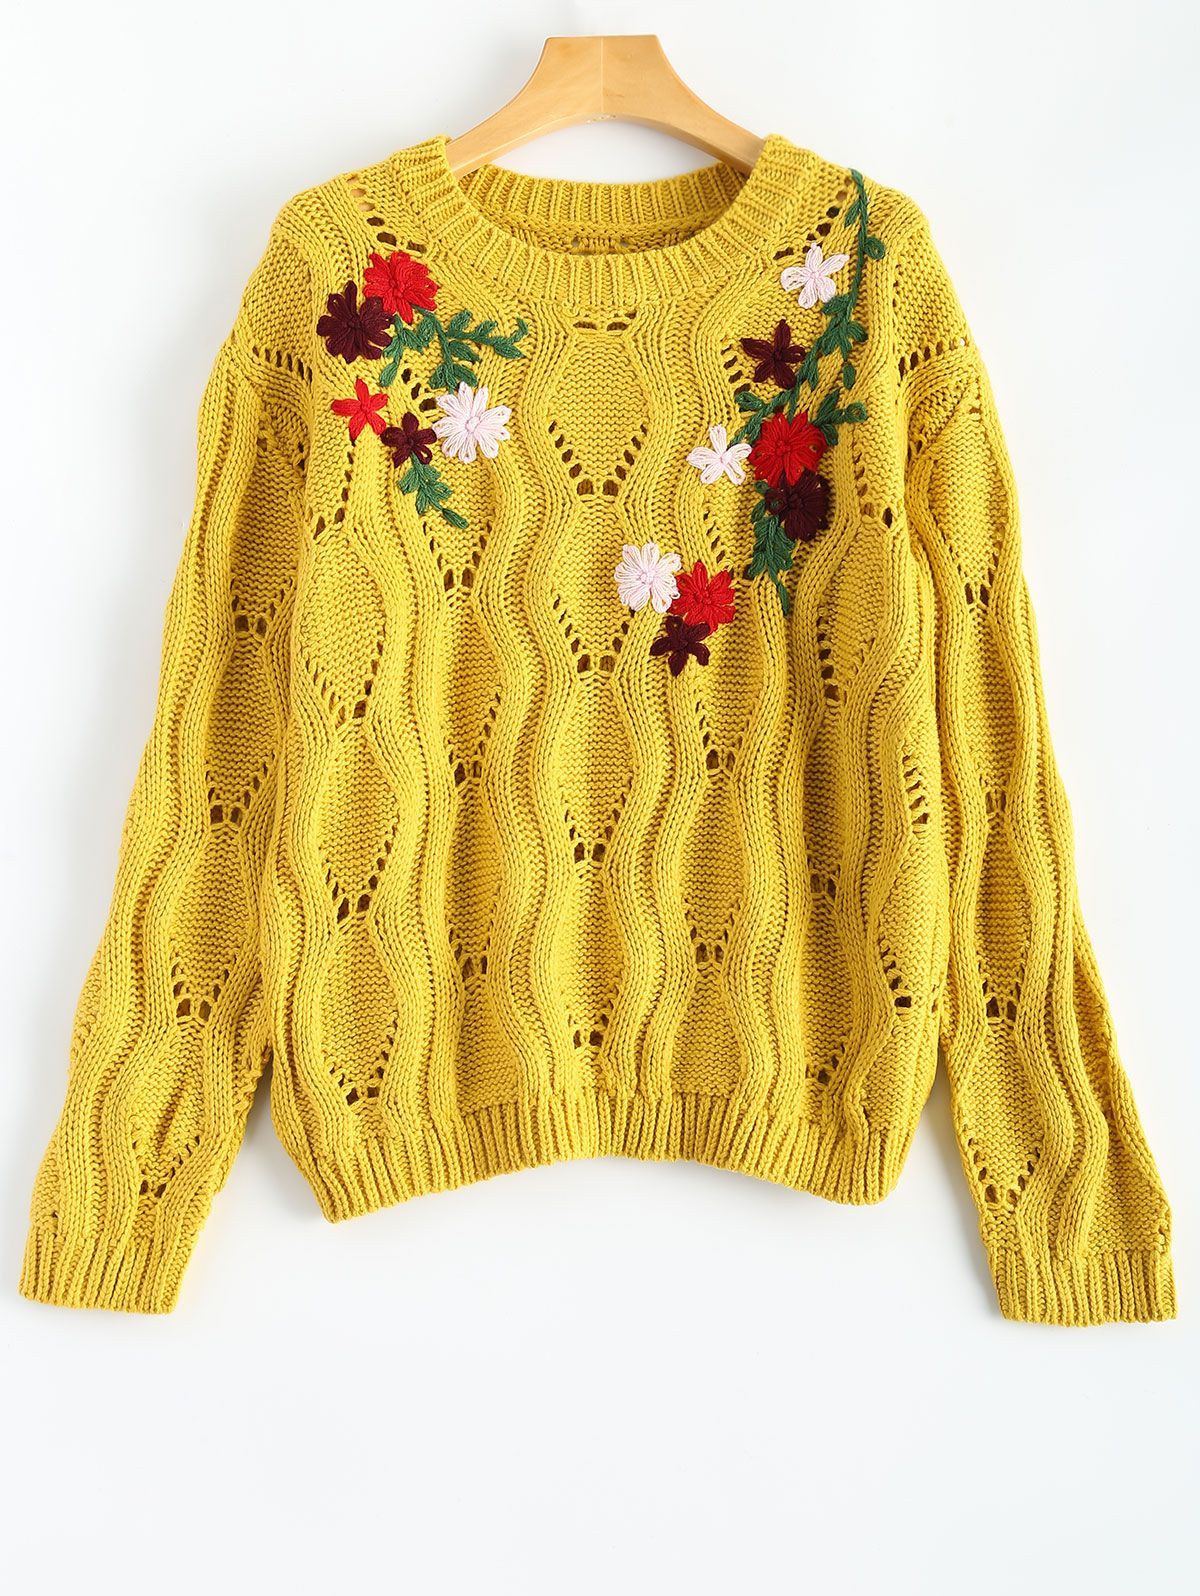 Floral Embroidered Cut Out Pullover Sweater | Retro floral, Retro ...